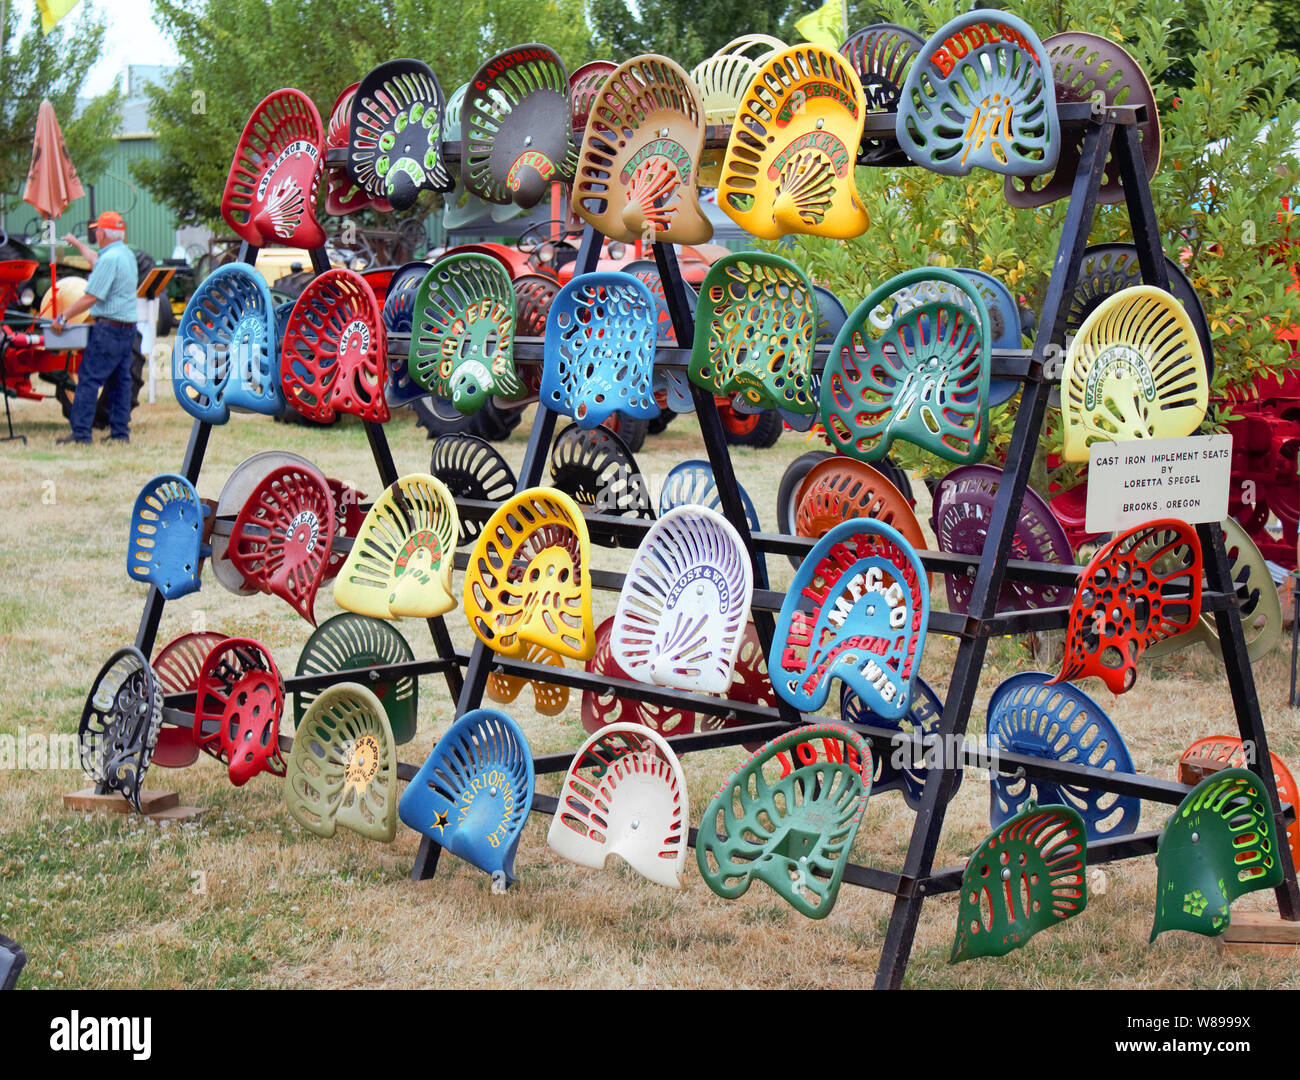 Tractor Seats High Resolution Stock Photography And Images Alamy